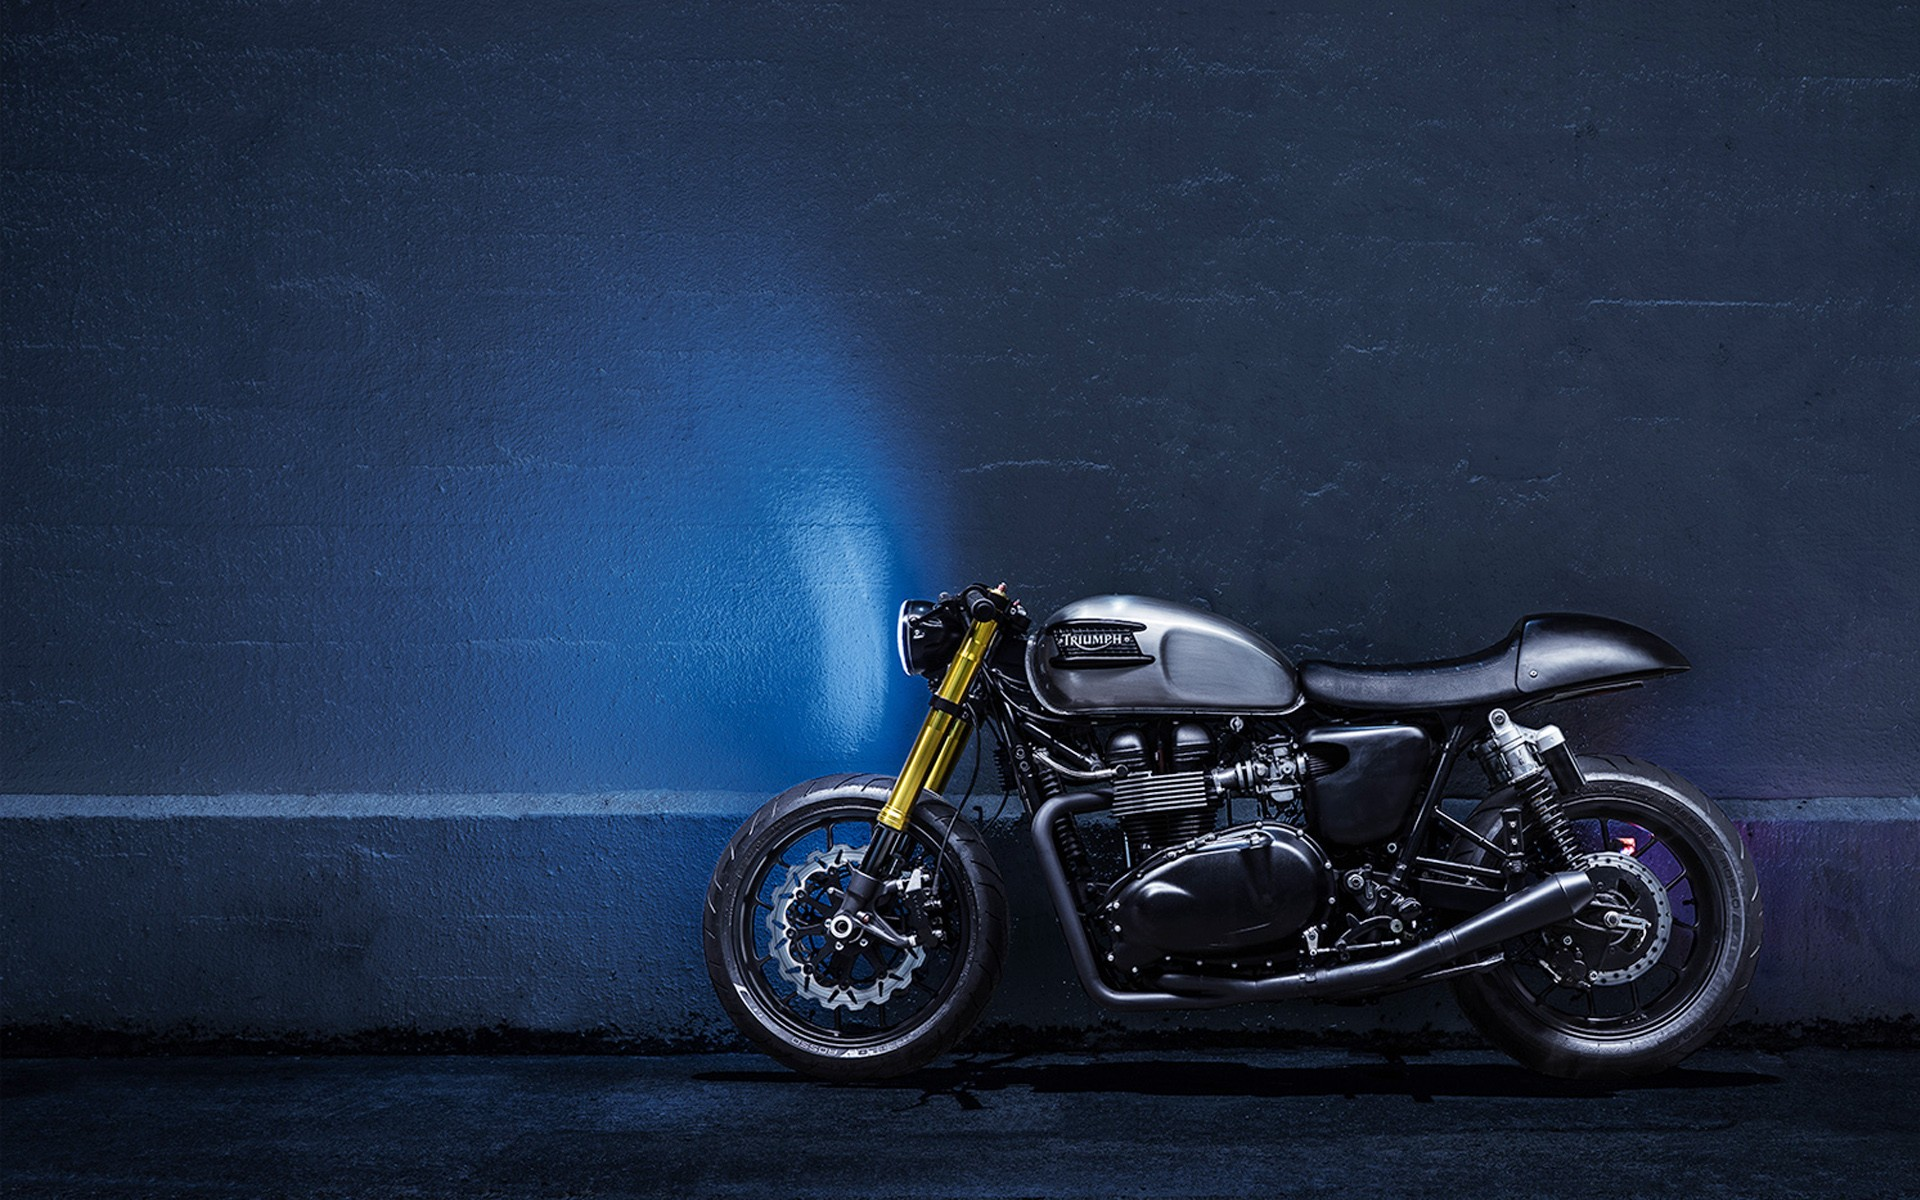 Triumph Bonneville Wallpaper